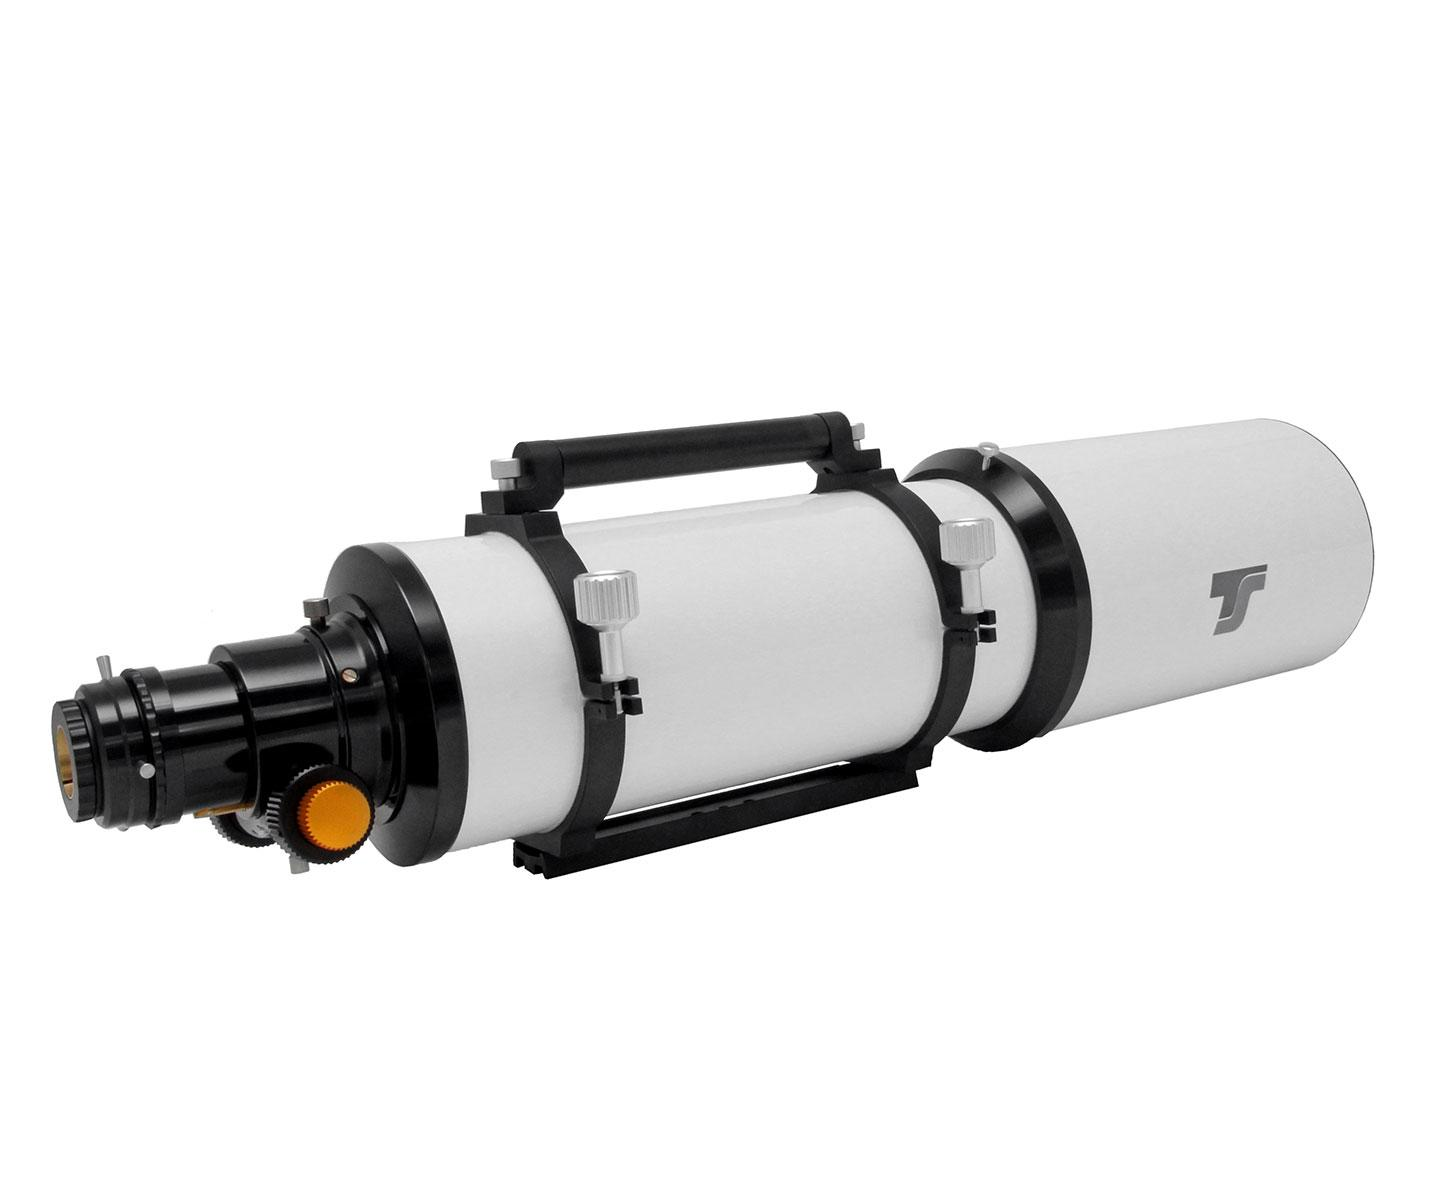 ts-152mm-rich-field-refractor-telescope-